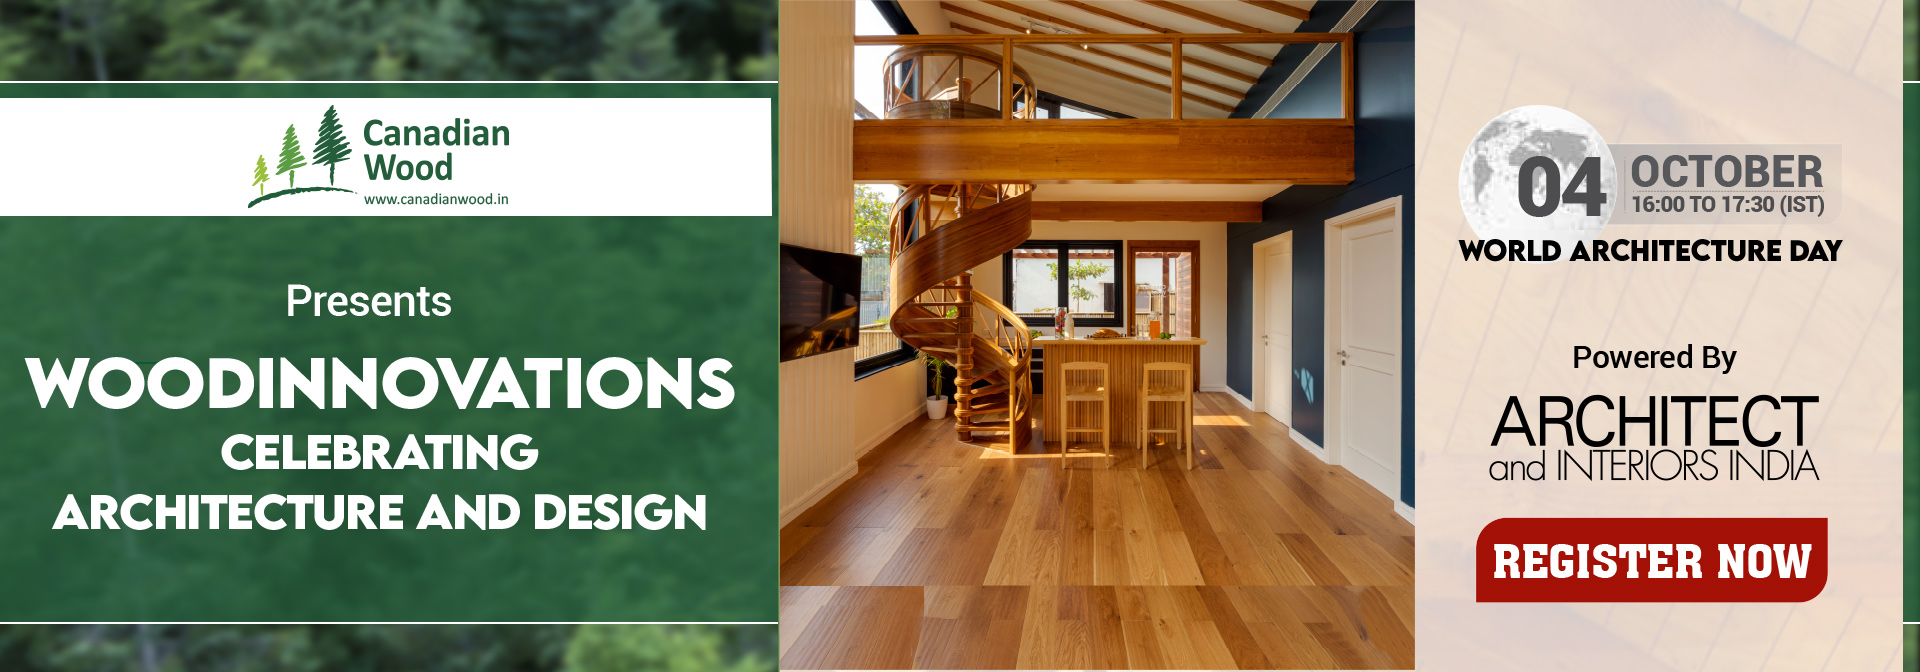 Woodinnovations- Celebrating Architecture and Design